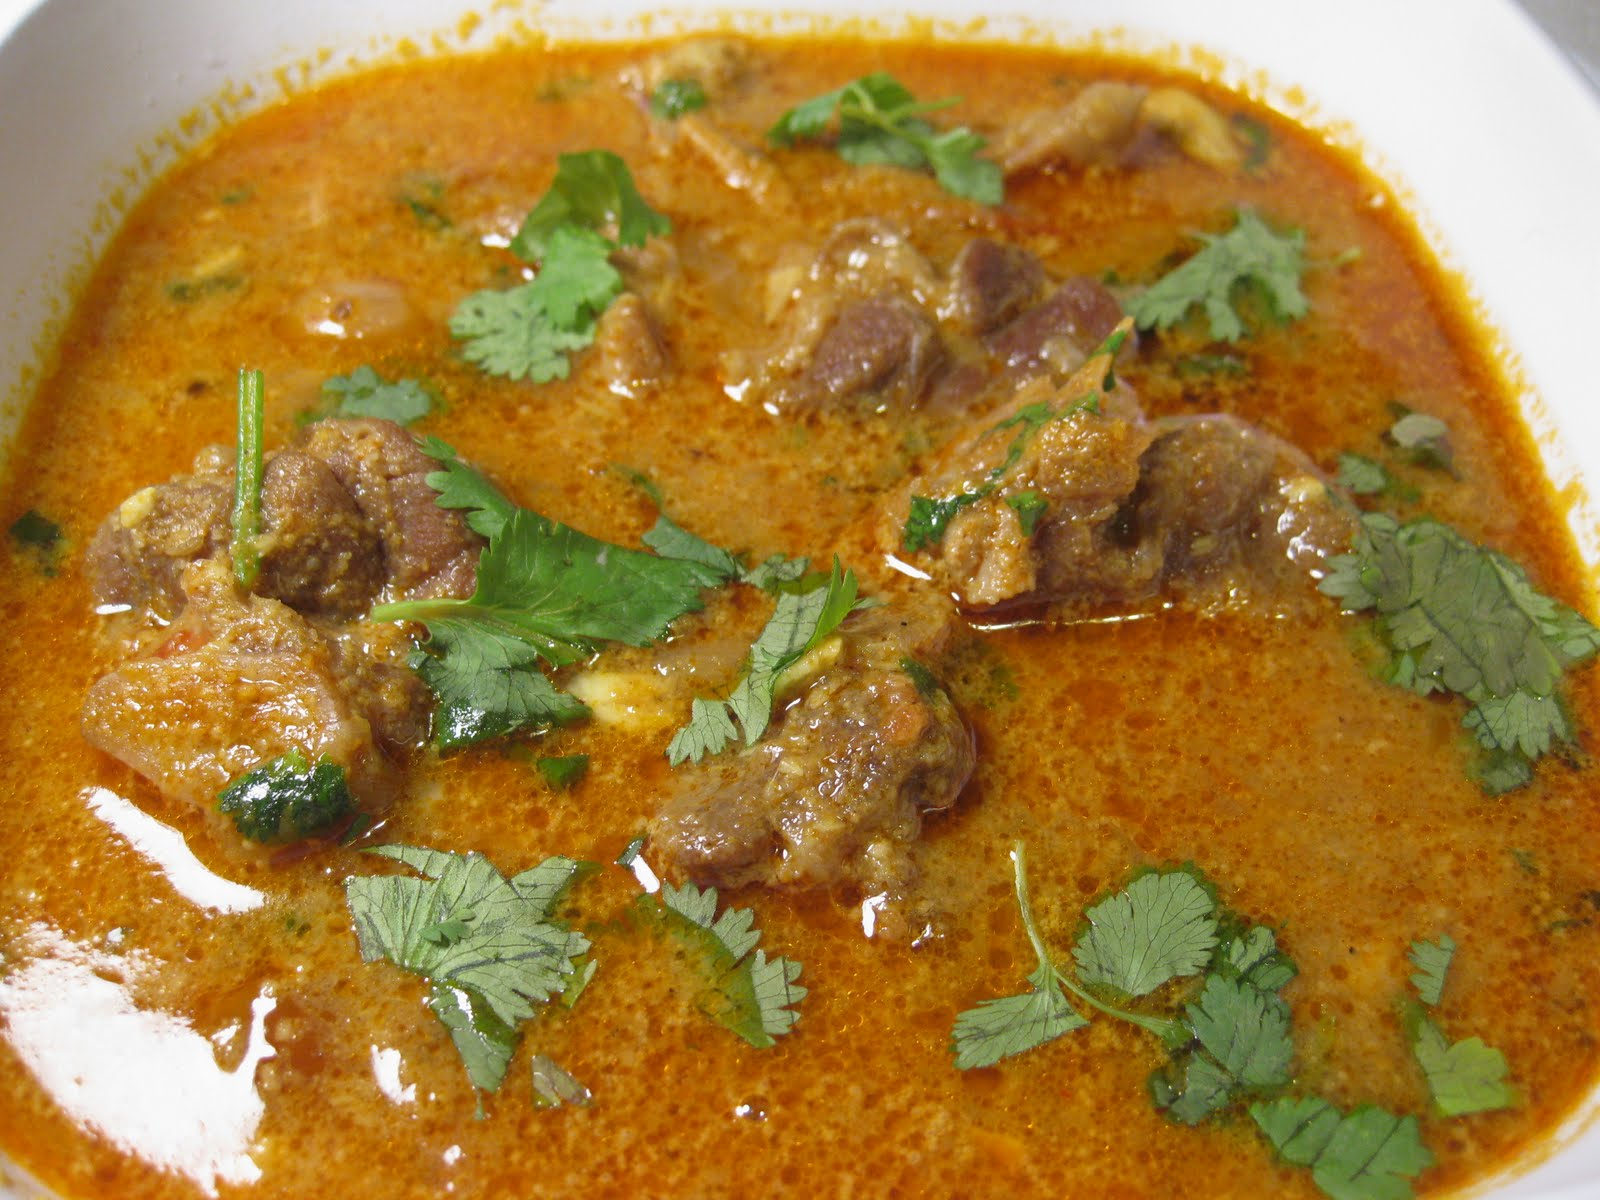 food blog on my kitchen cuisine: Chettinad Lamb Curry